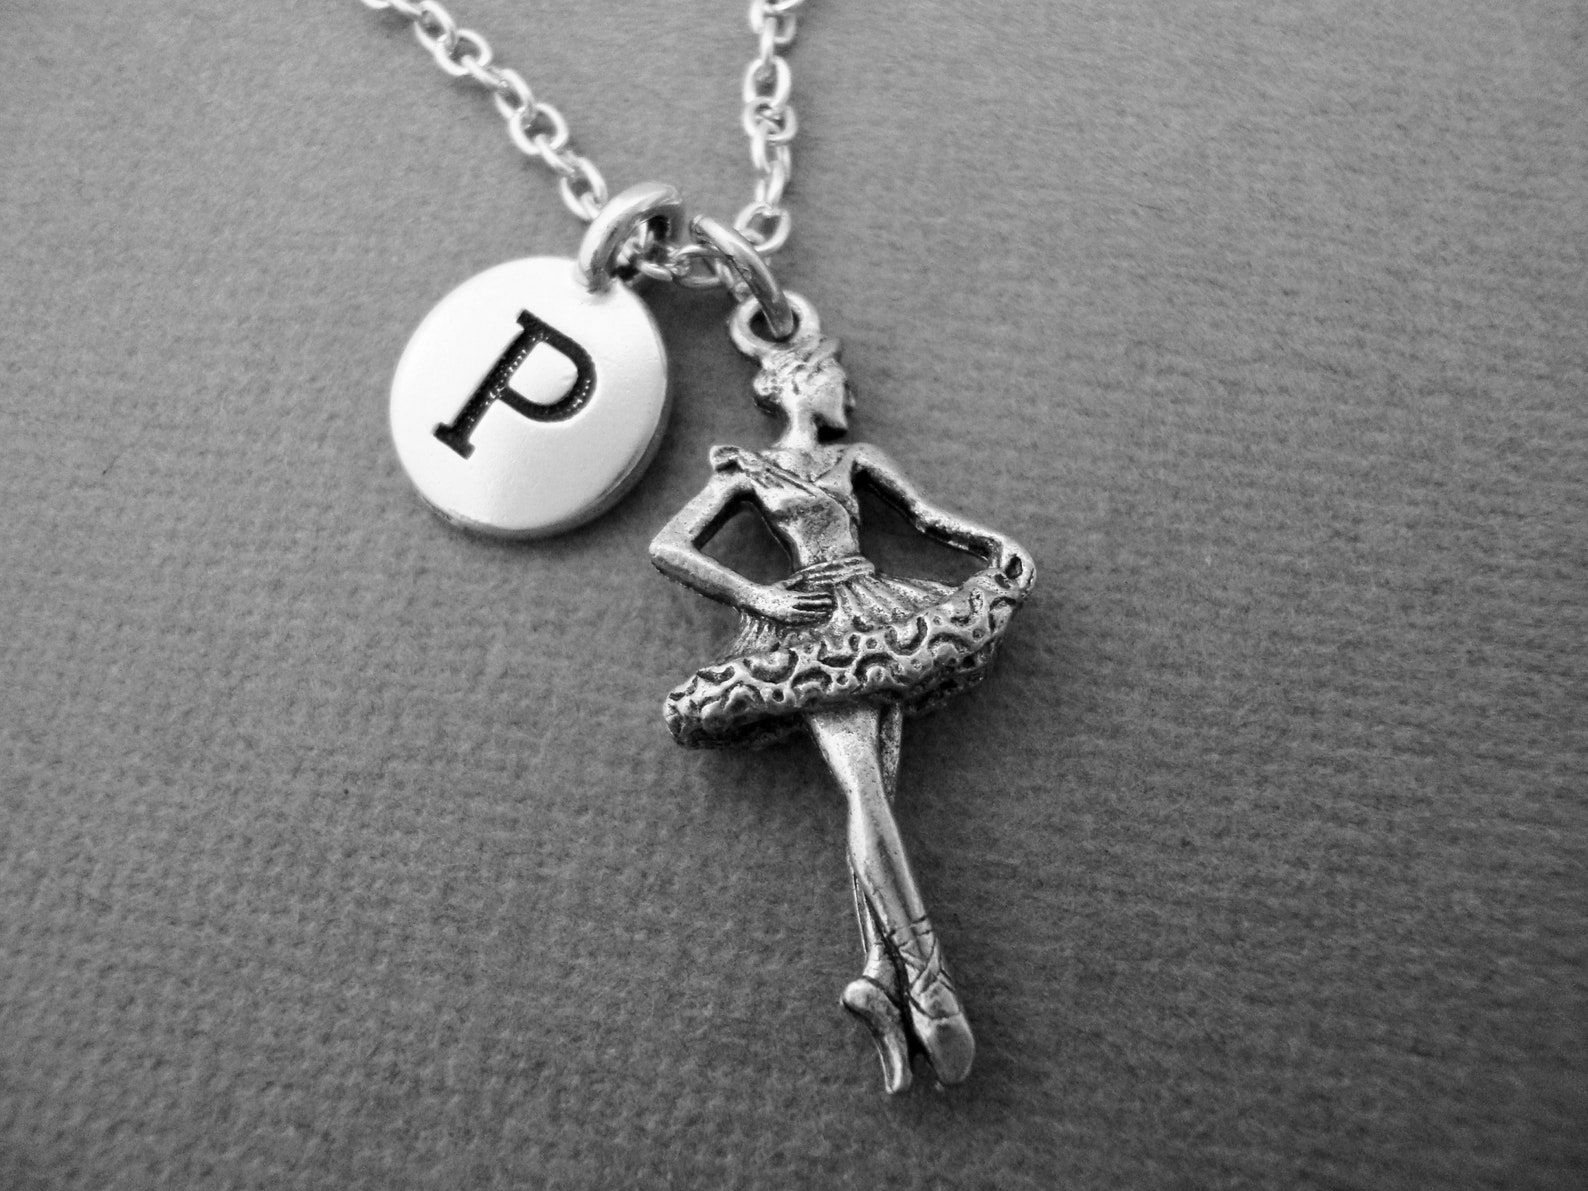 ballerina necklace prima ballerina keychain keyring ballet dancer charm jewelry initial necklace theater performing arts dance t